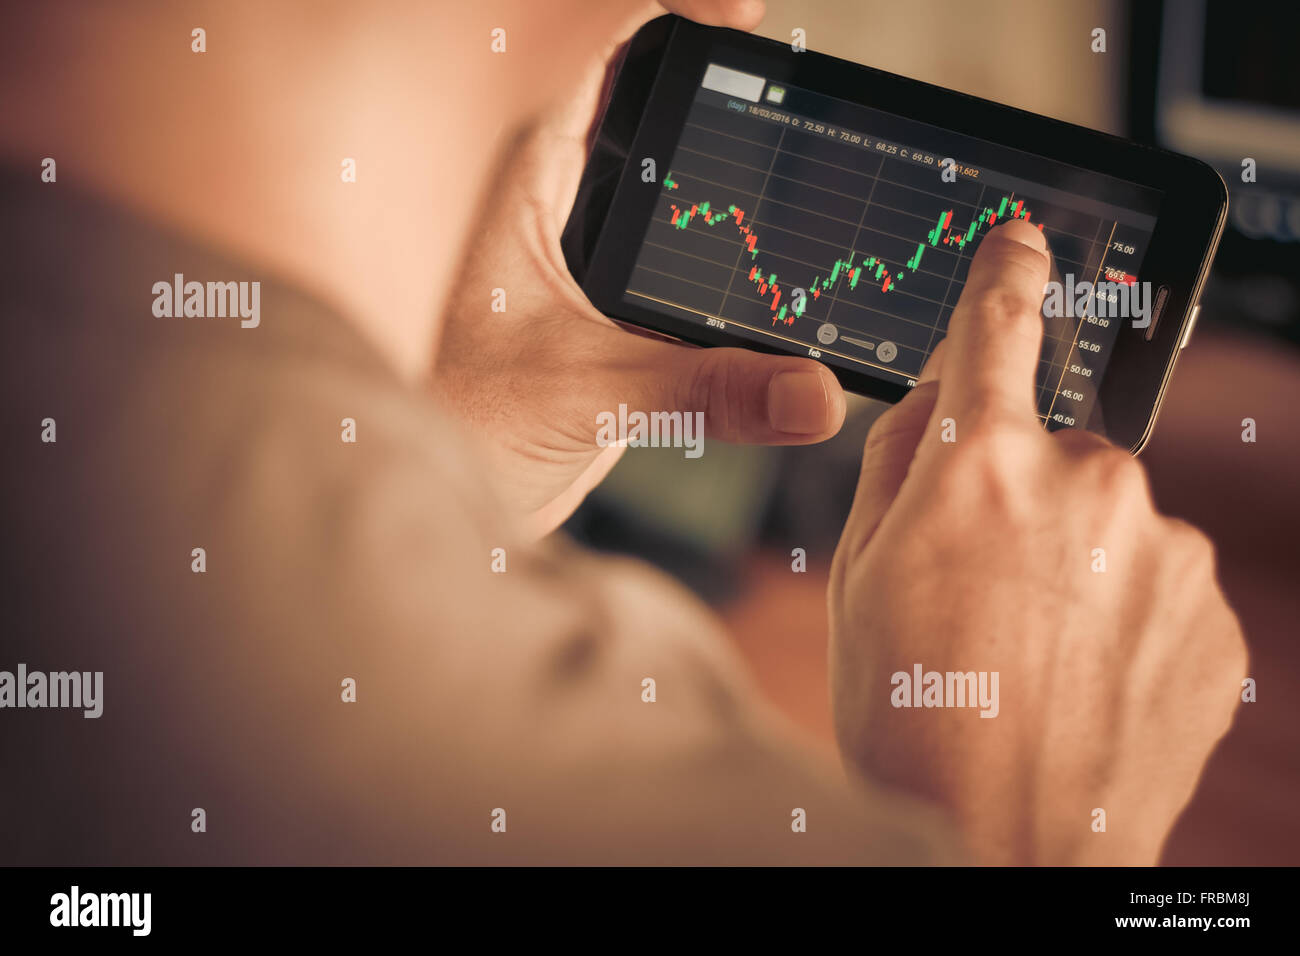 a man checking stock market on smartphone - Stock Image